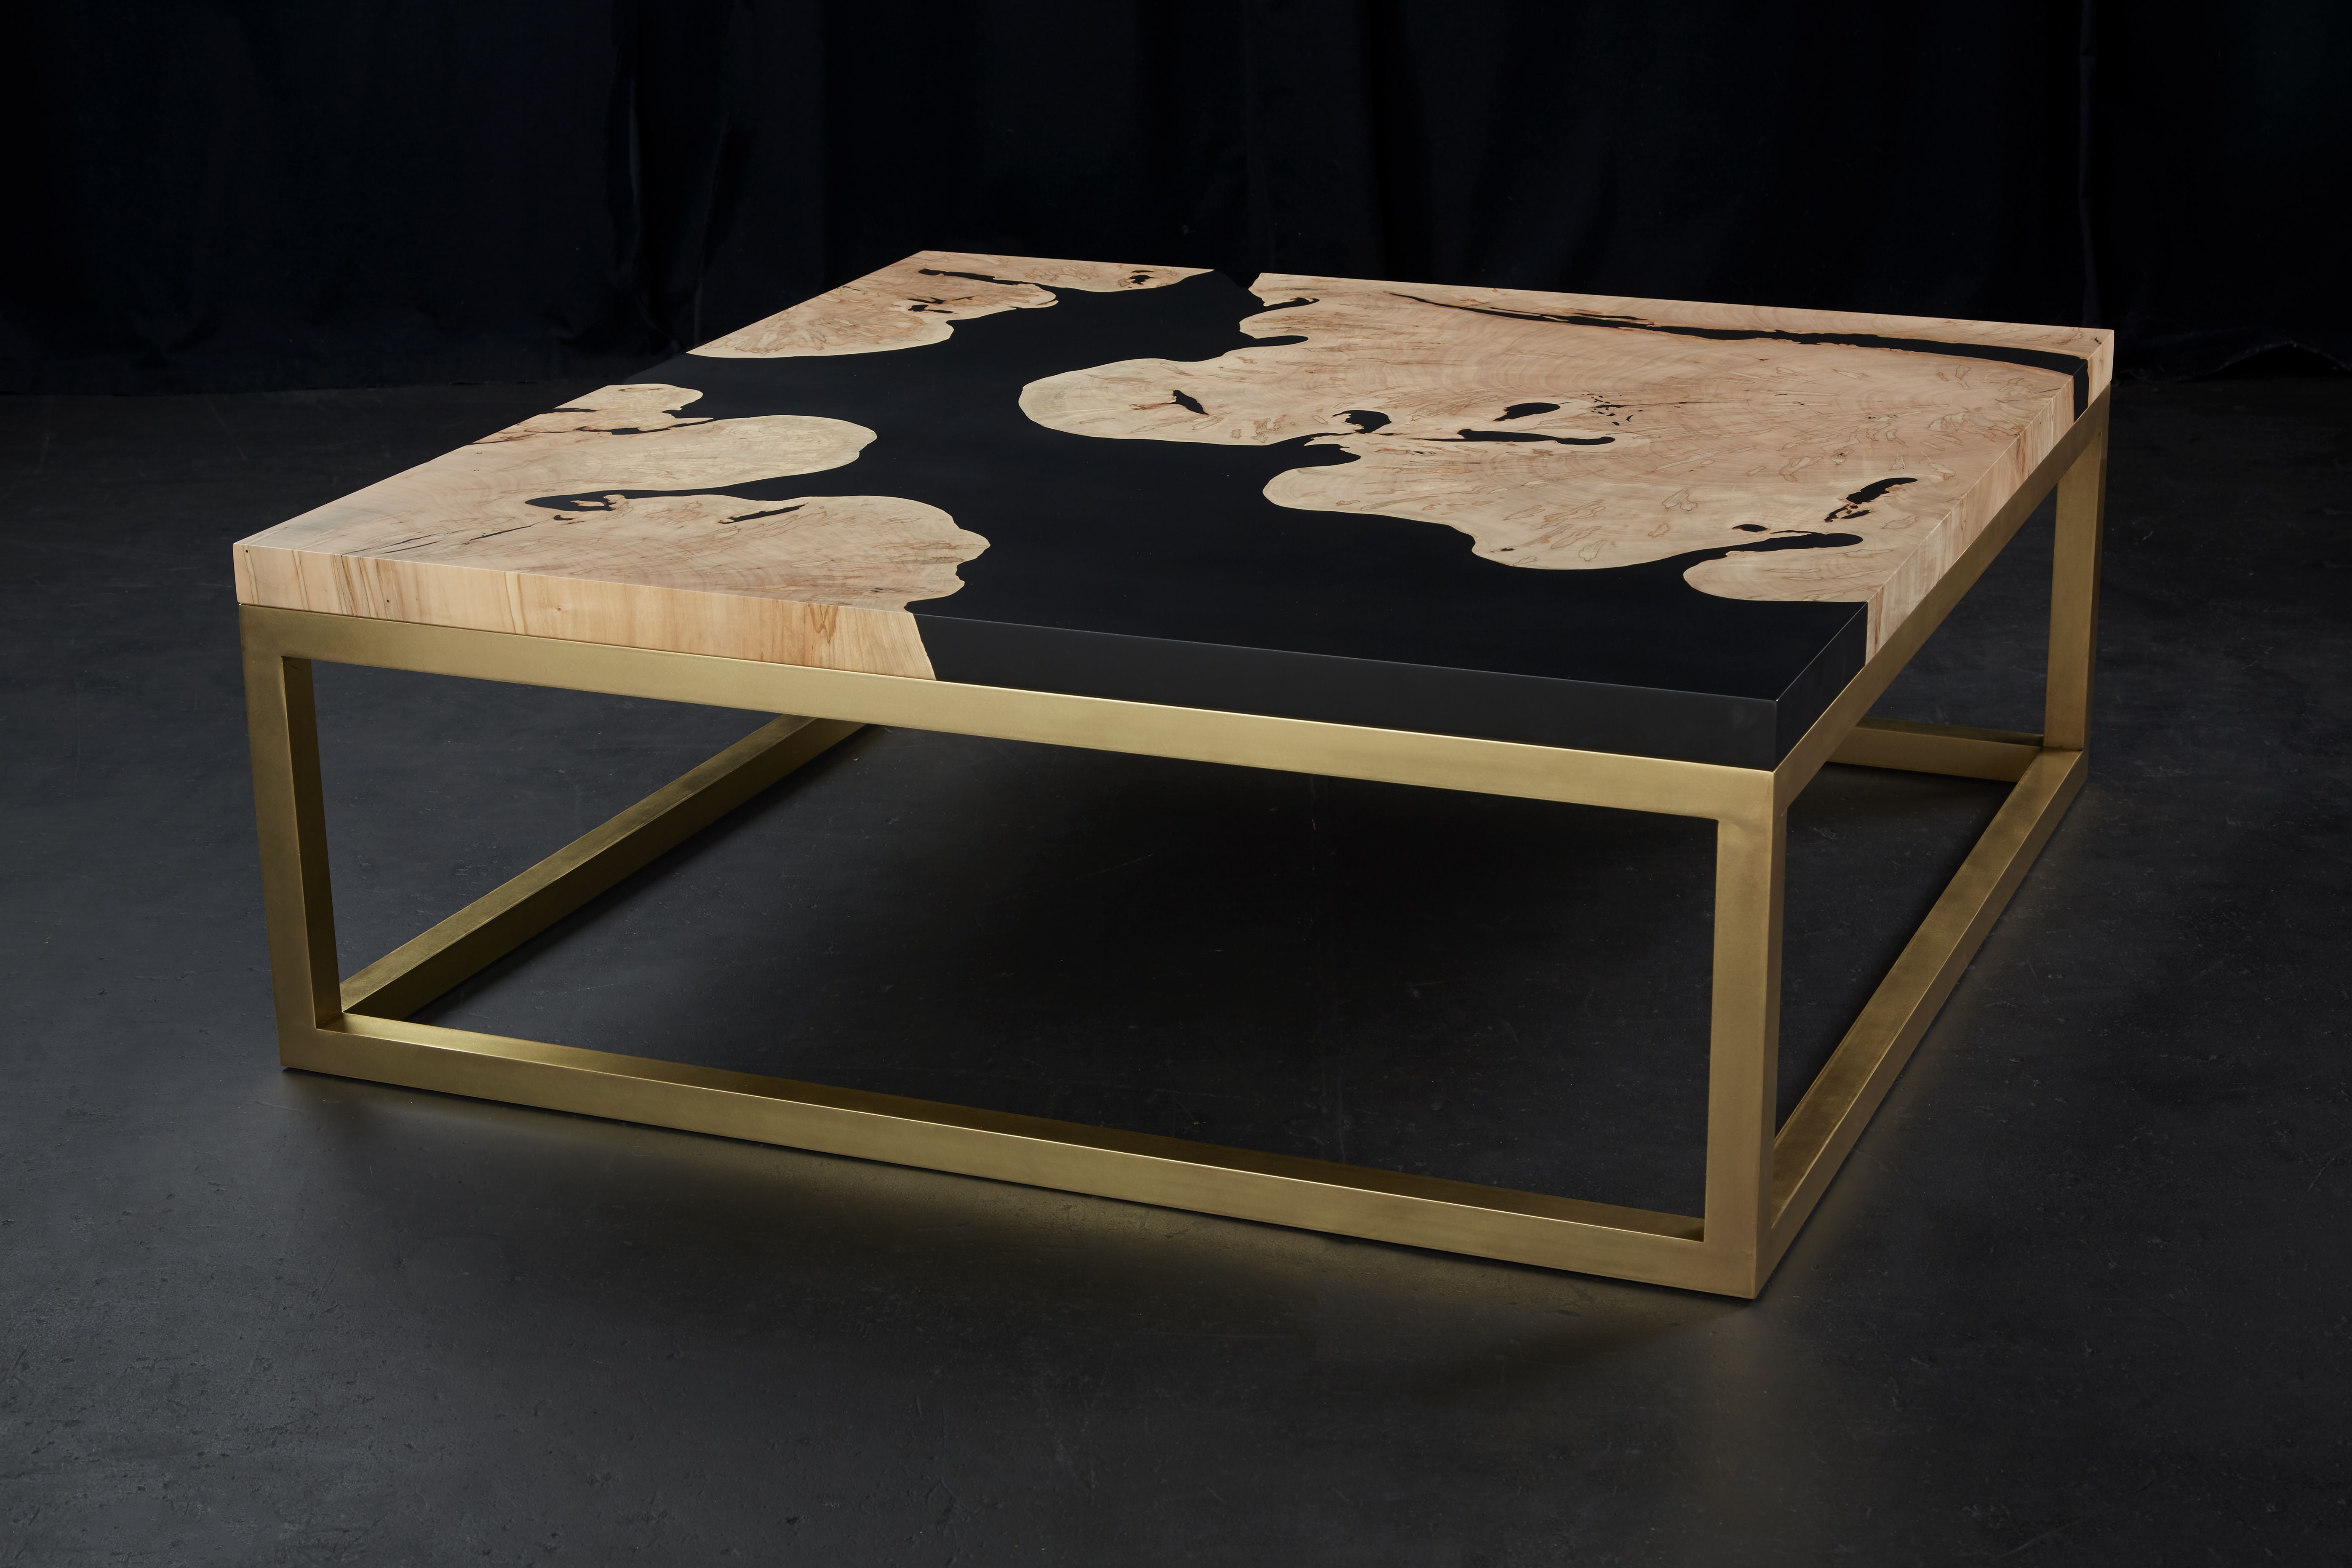 Coffee table made of soft maple wood and black-tinted epoxy resin